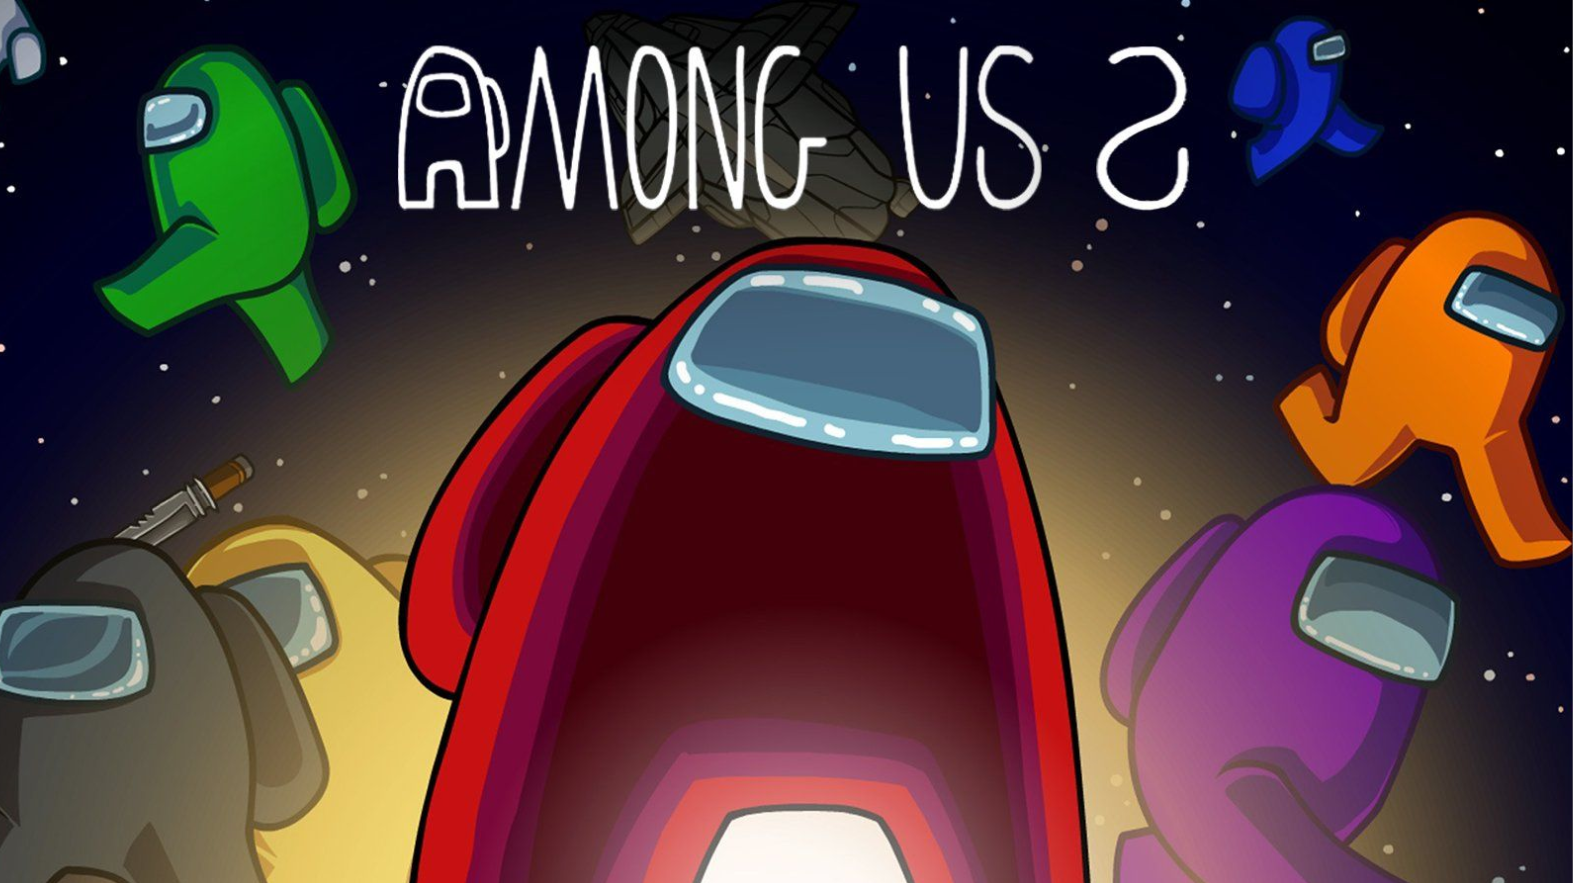 why was among us 2 cancelled